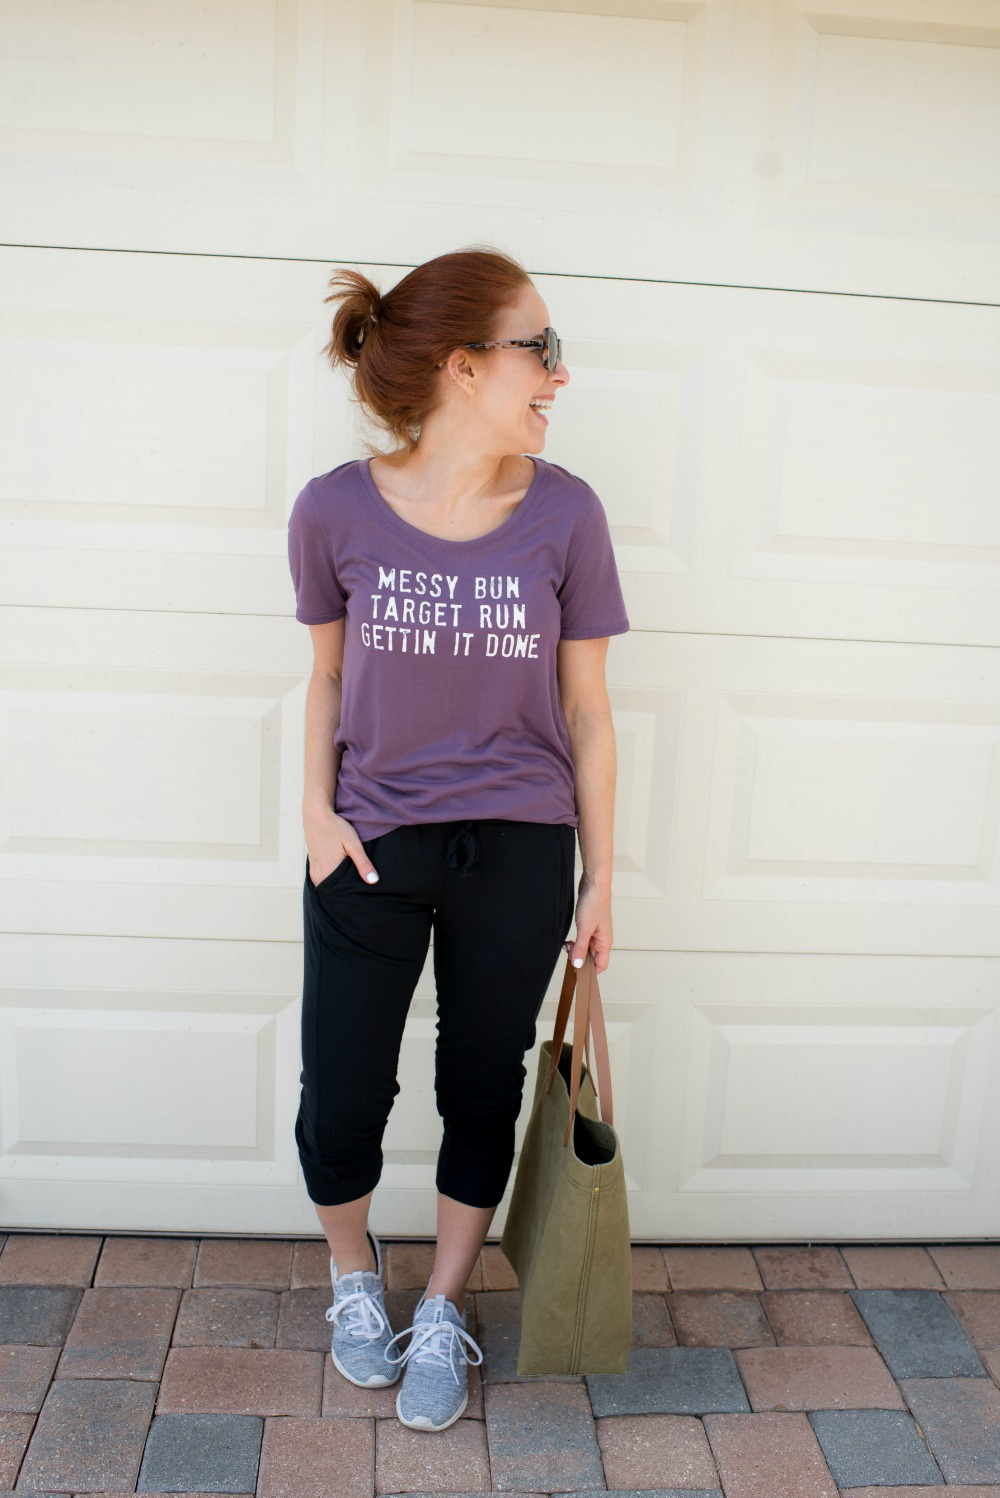 Casual weekend outfit ideas // the modern savvy - Casual Weekend Outfit featured by popular Florida style blogger The Modern Savvy